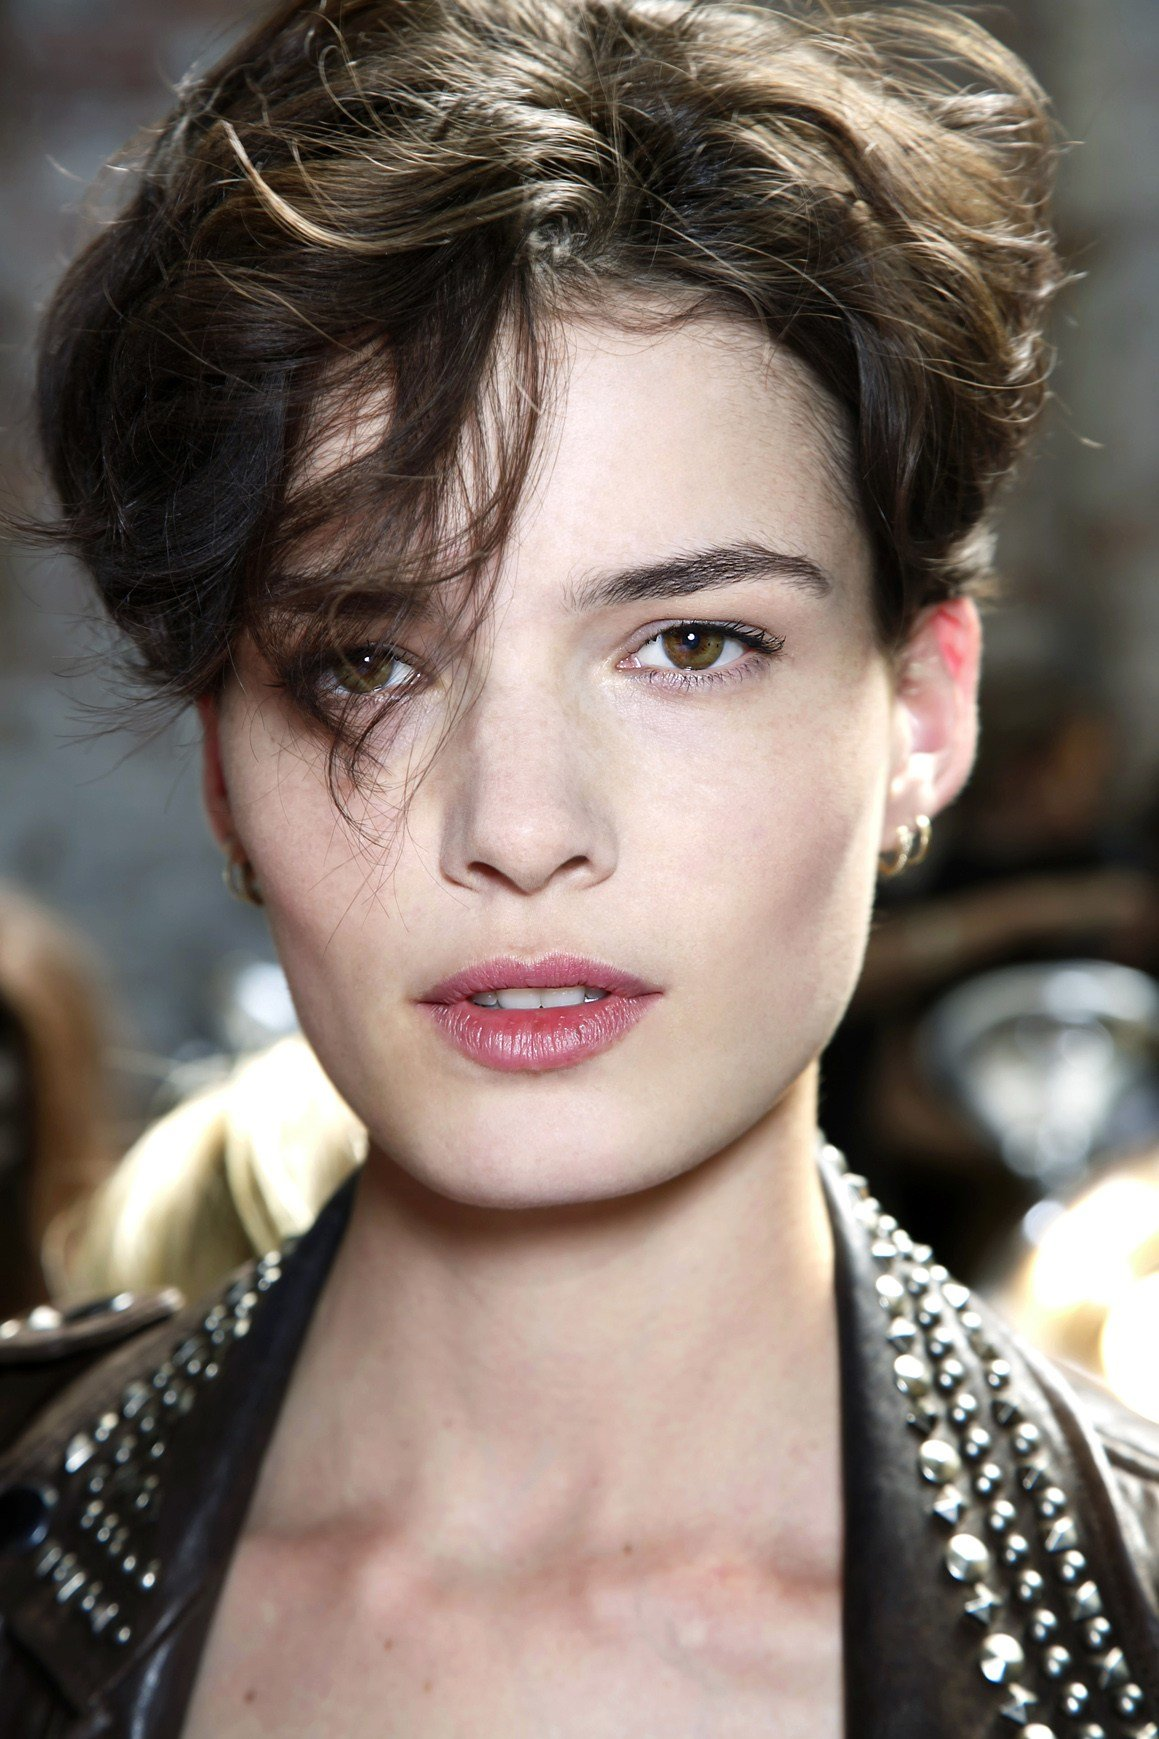 The Best Short Hair 8 Things To Know Before You Cut Your Hair Stylecaster Pictures